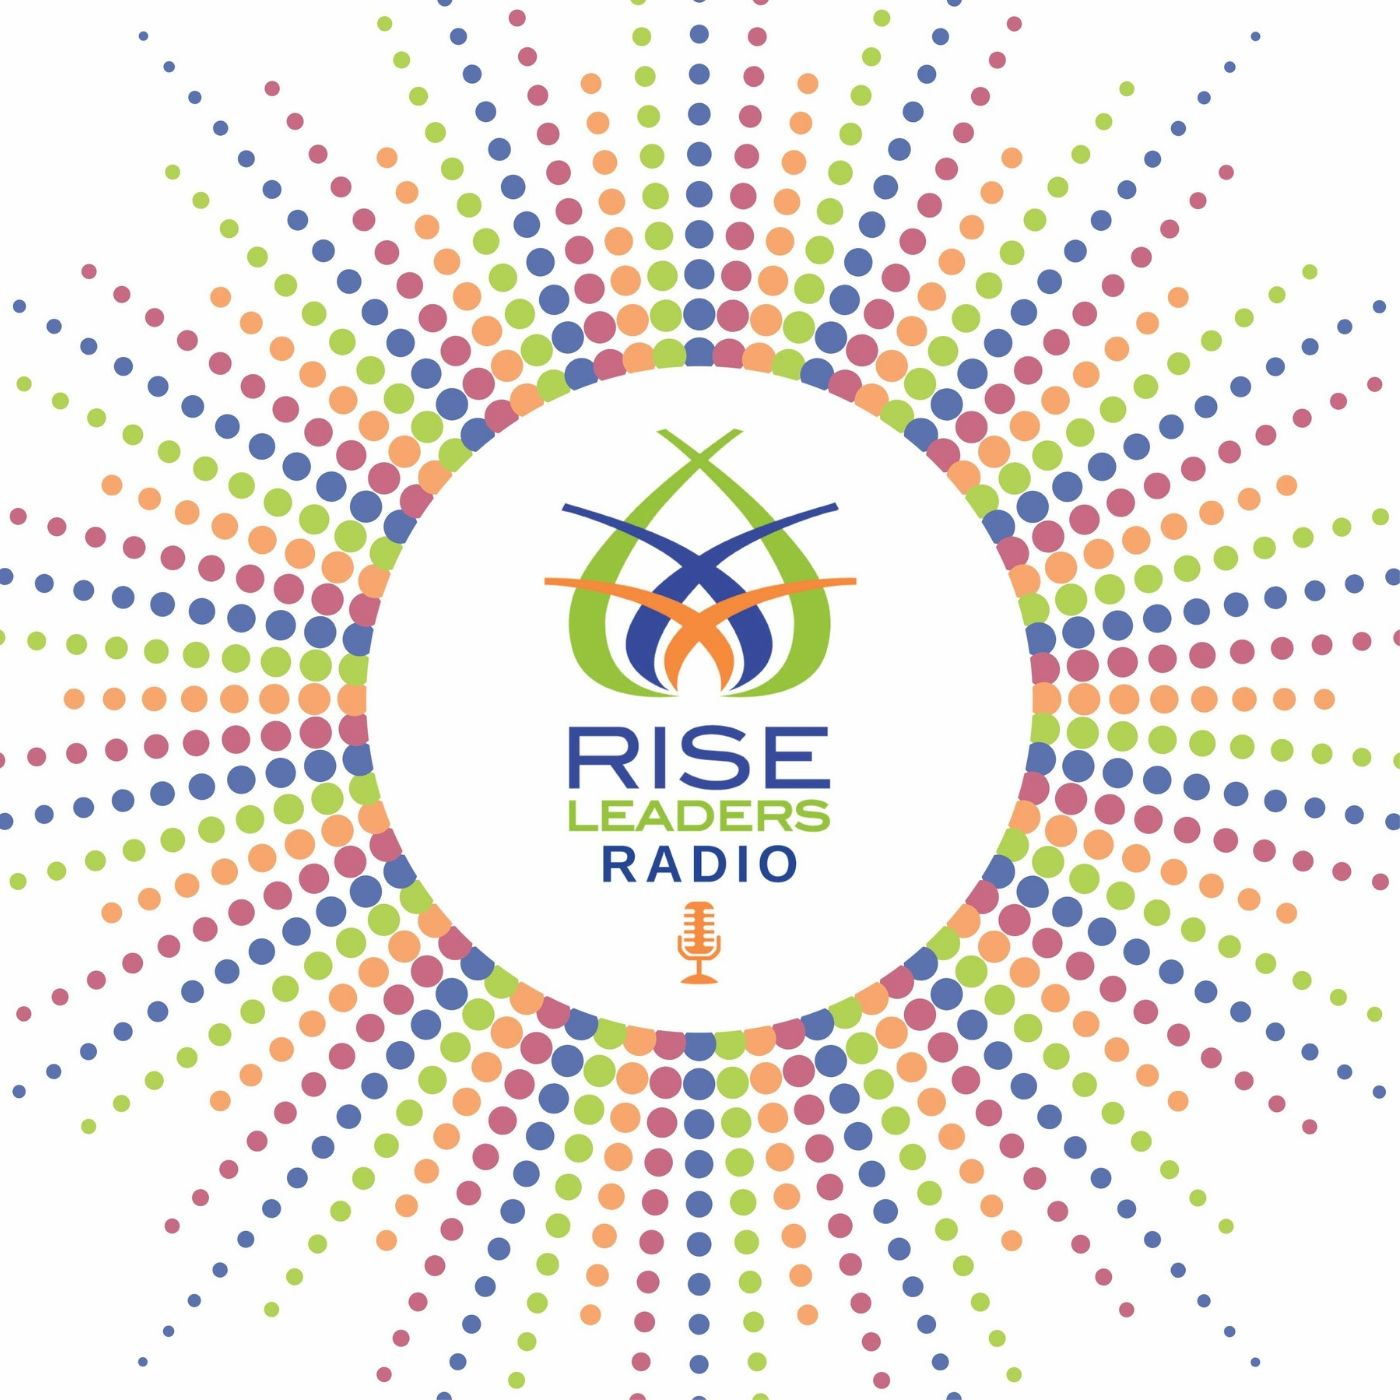 Rise Leaders Radio